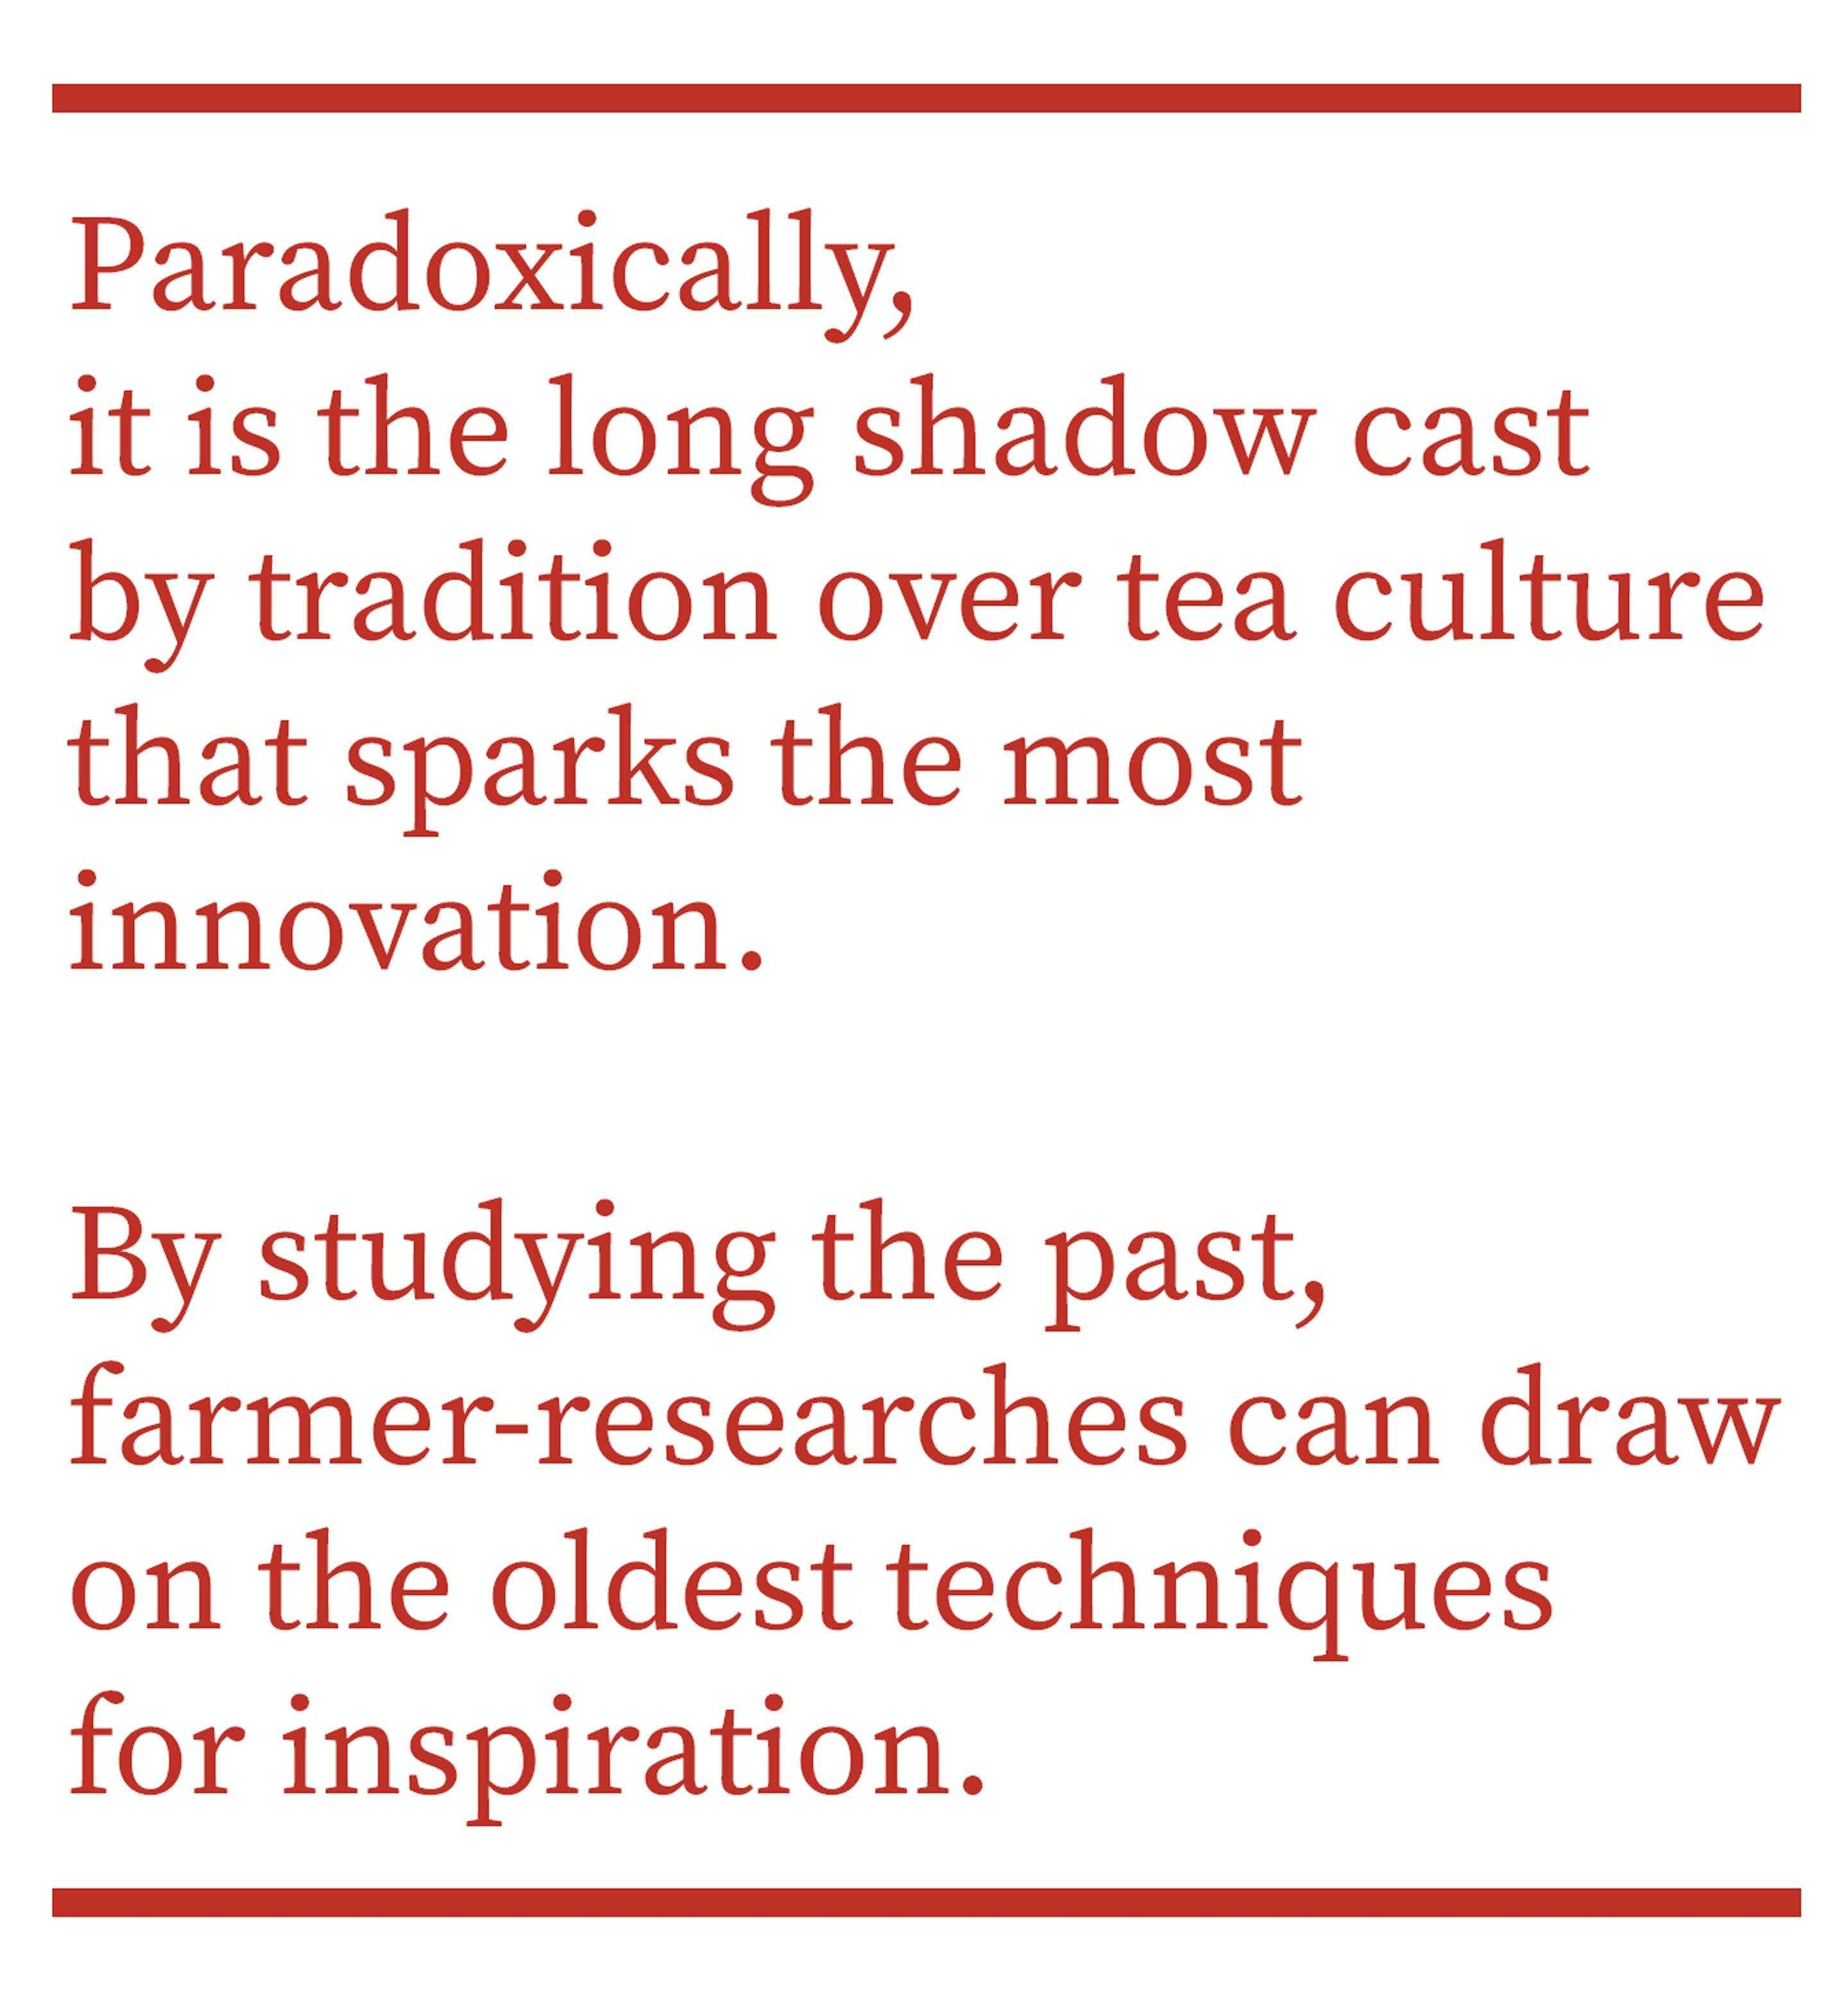 Paradoxically, it is the long shadow cast by tradition over tea culture that sparks the most innovation. By studying the past, farmer-researchers can draw on the oldest techniques for inspiration.